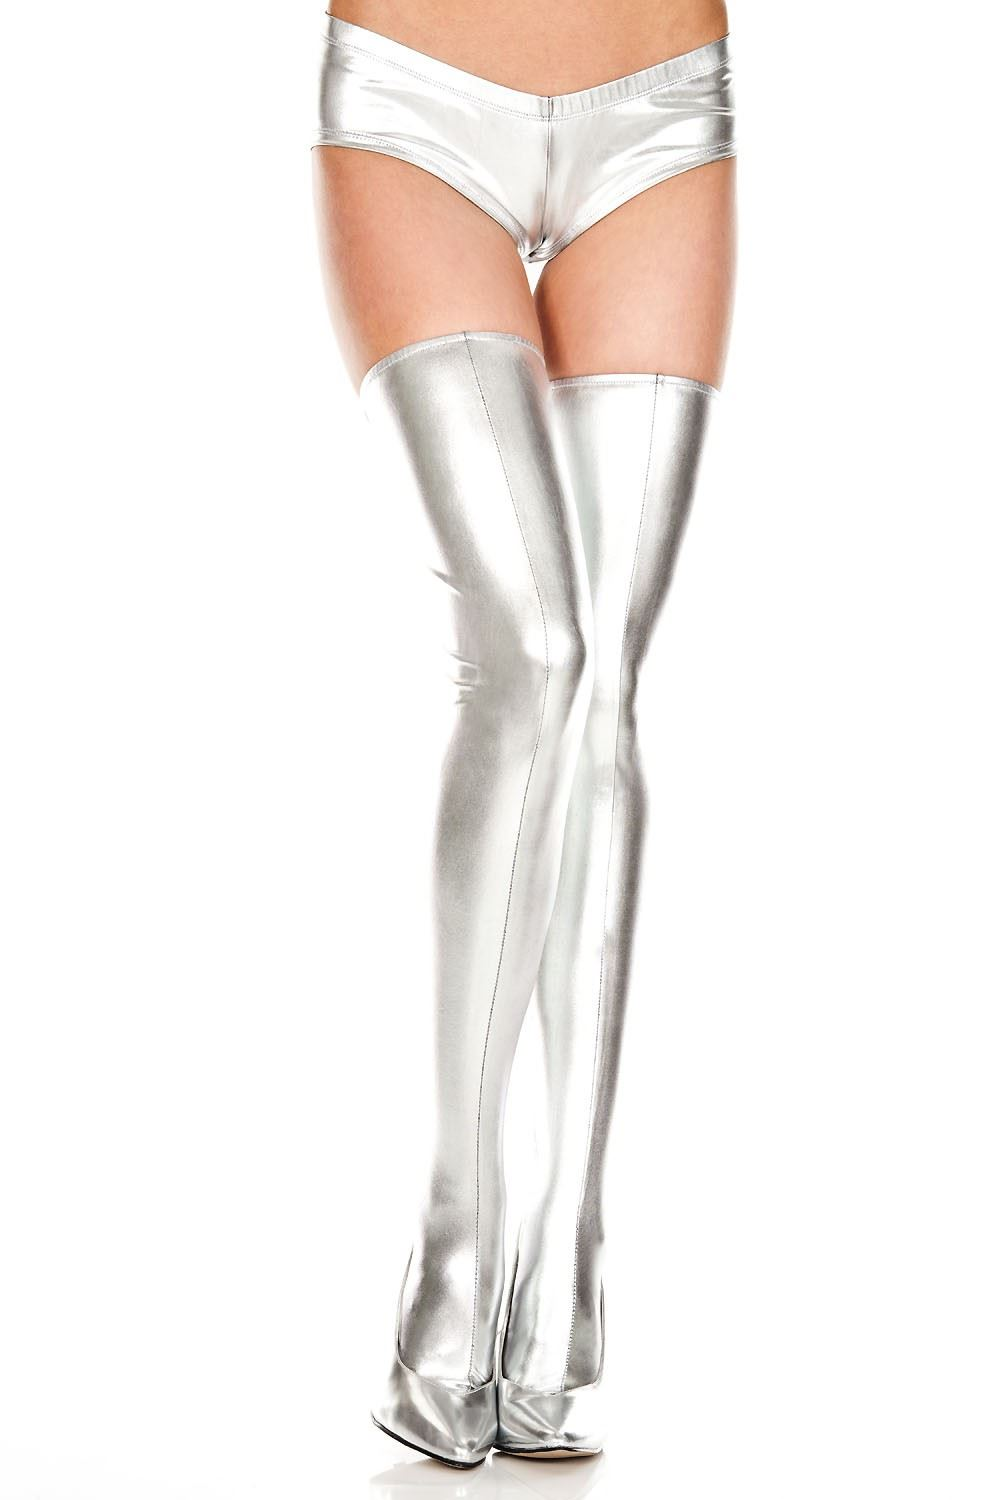 8731b76bd2a Adult Wet Look Thigh High Silver ...